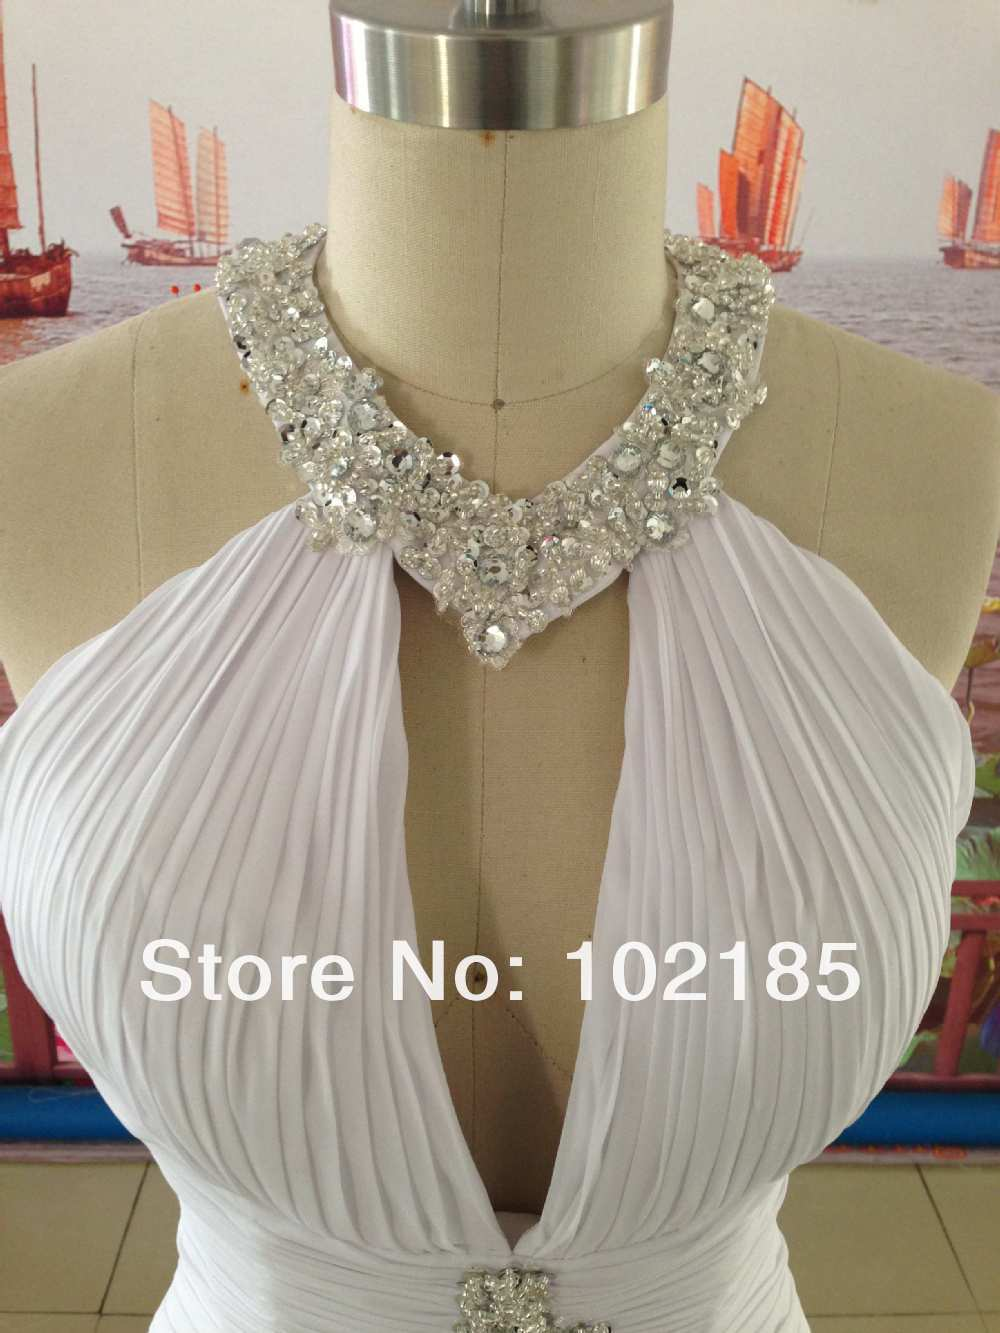 2017 Actual images halter neckline sleeveless beaded wedding dress gown with train JWD006